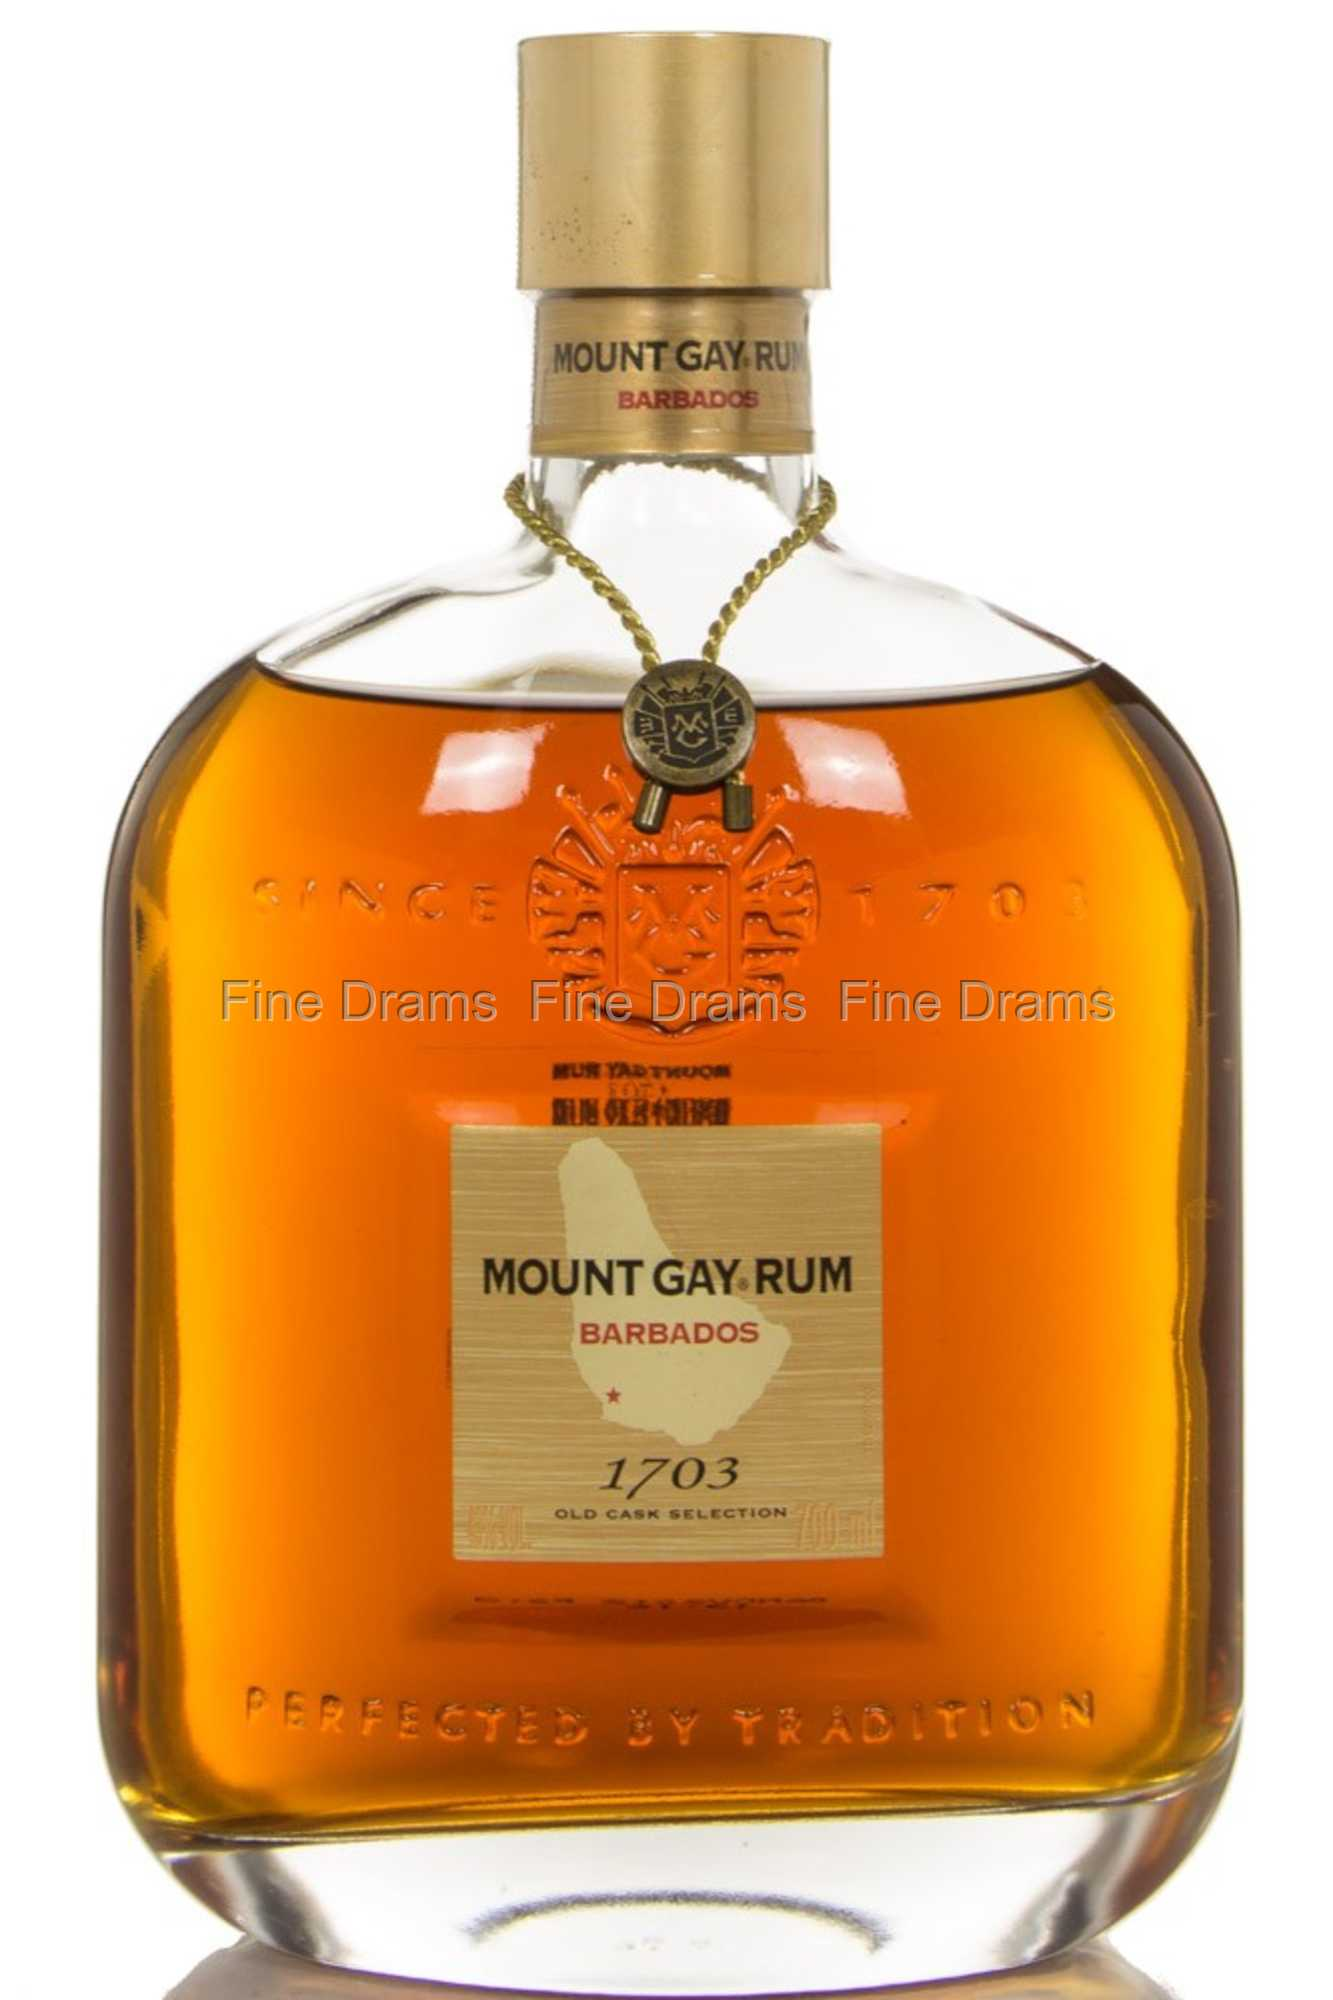 from Mateo mouny gay 1703 rum